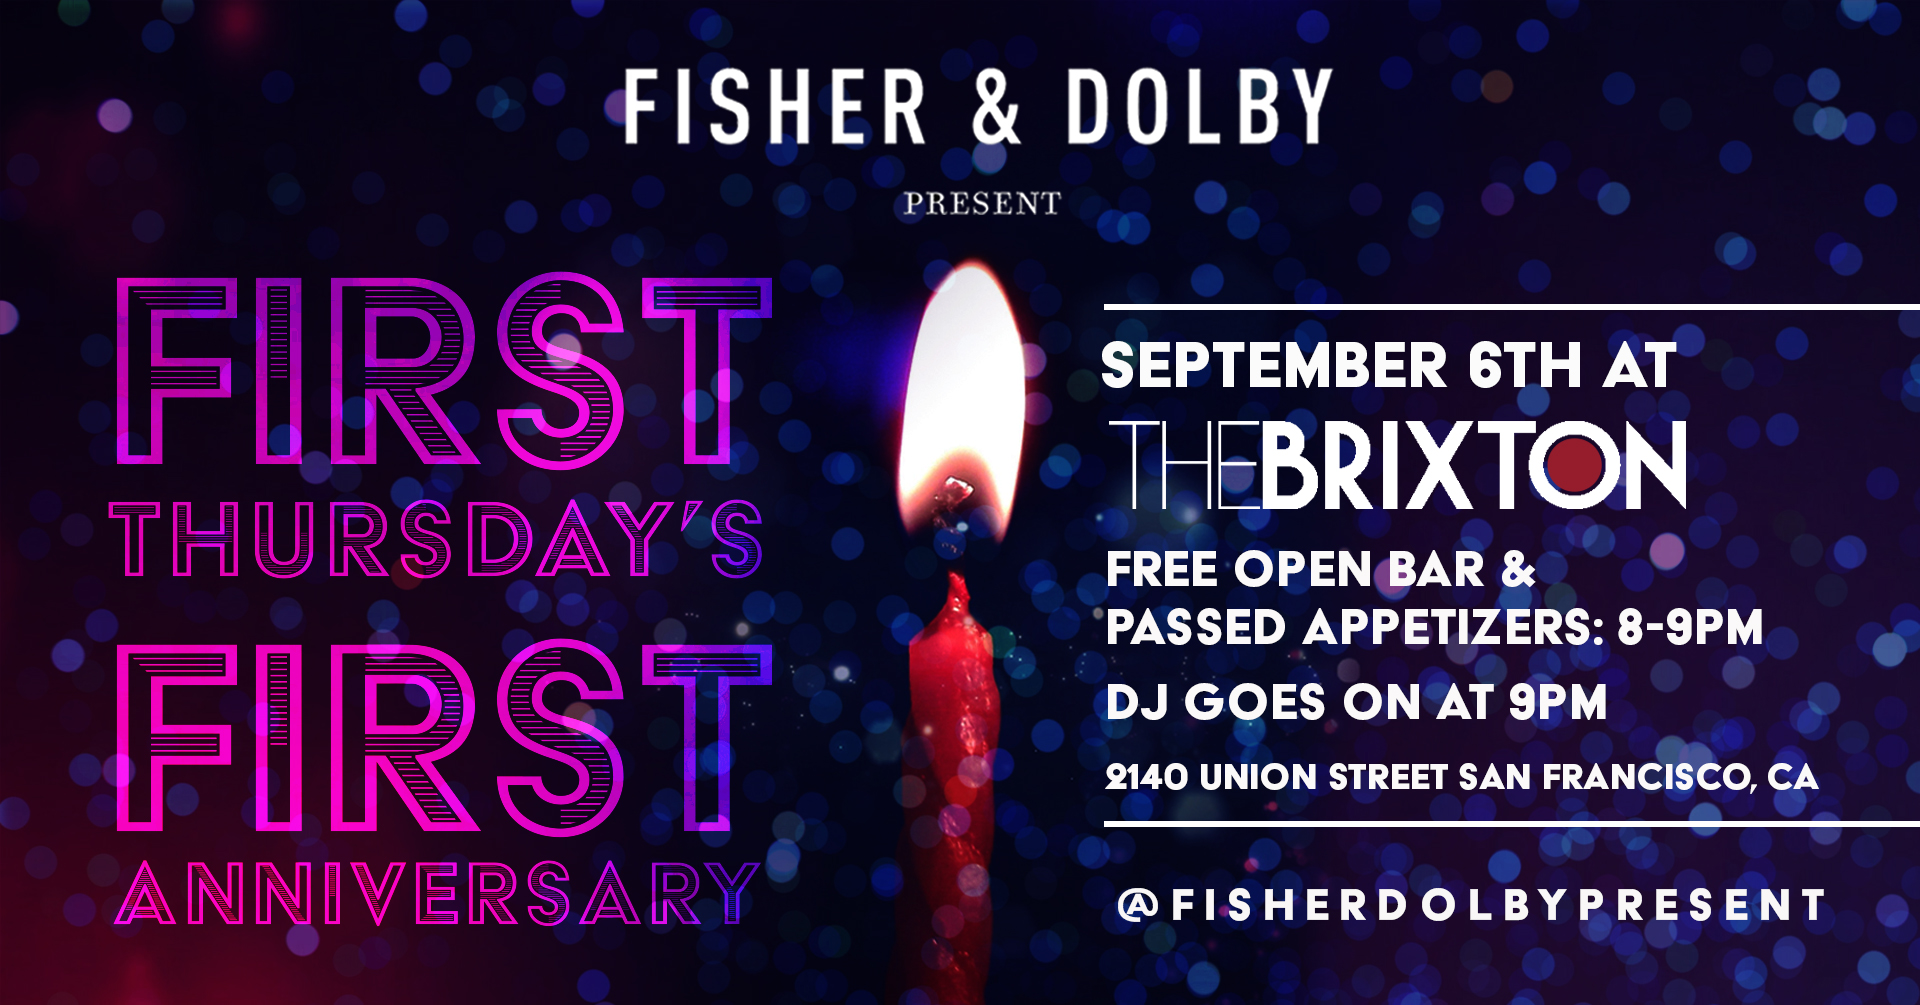 Fisher&Dolby-FB_FirstThursdays96.jpg